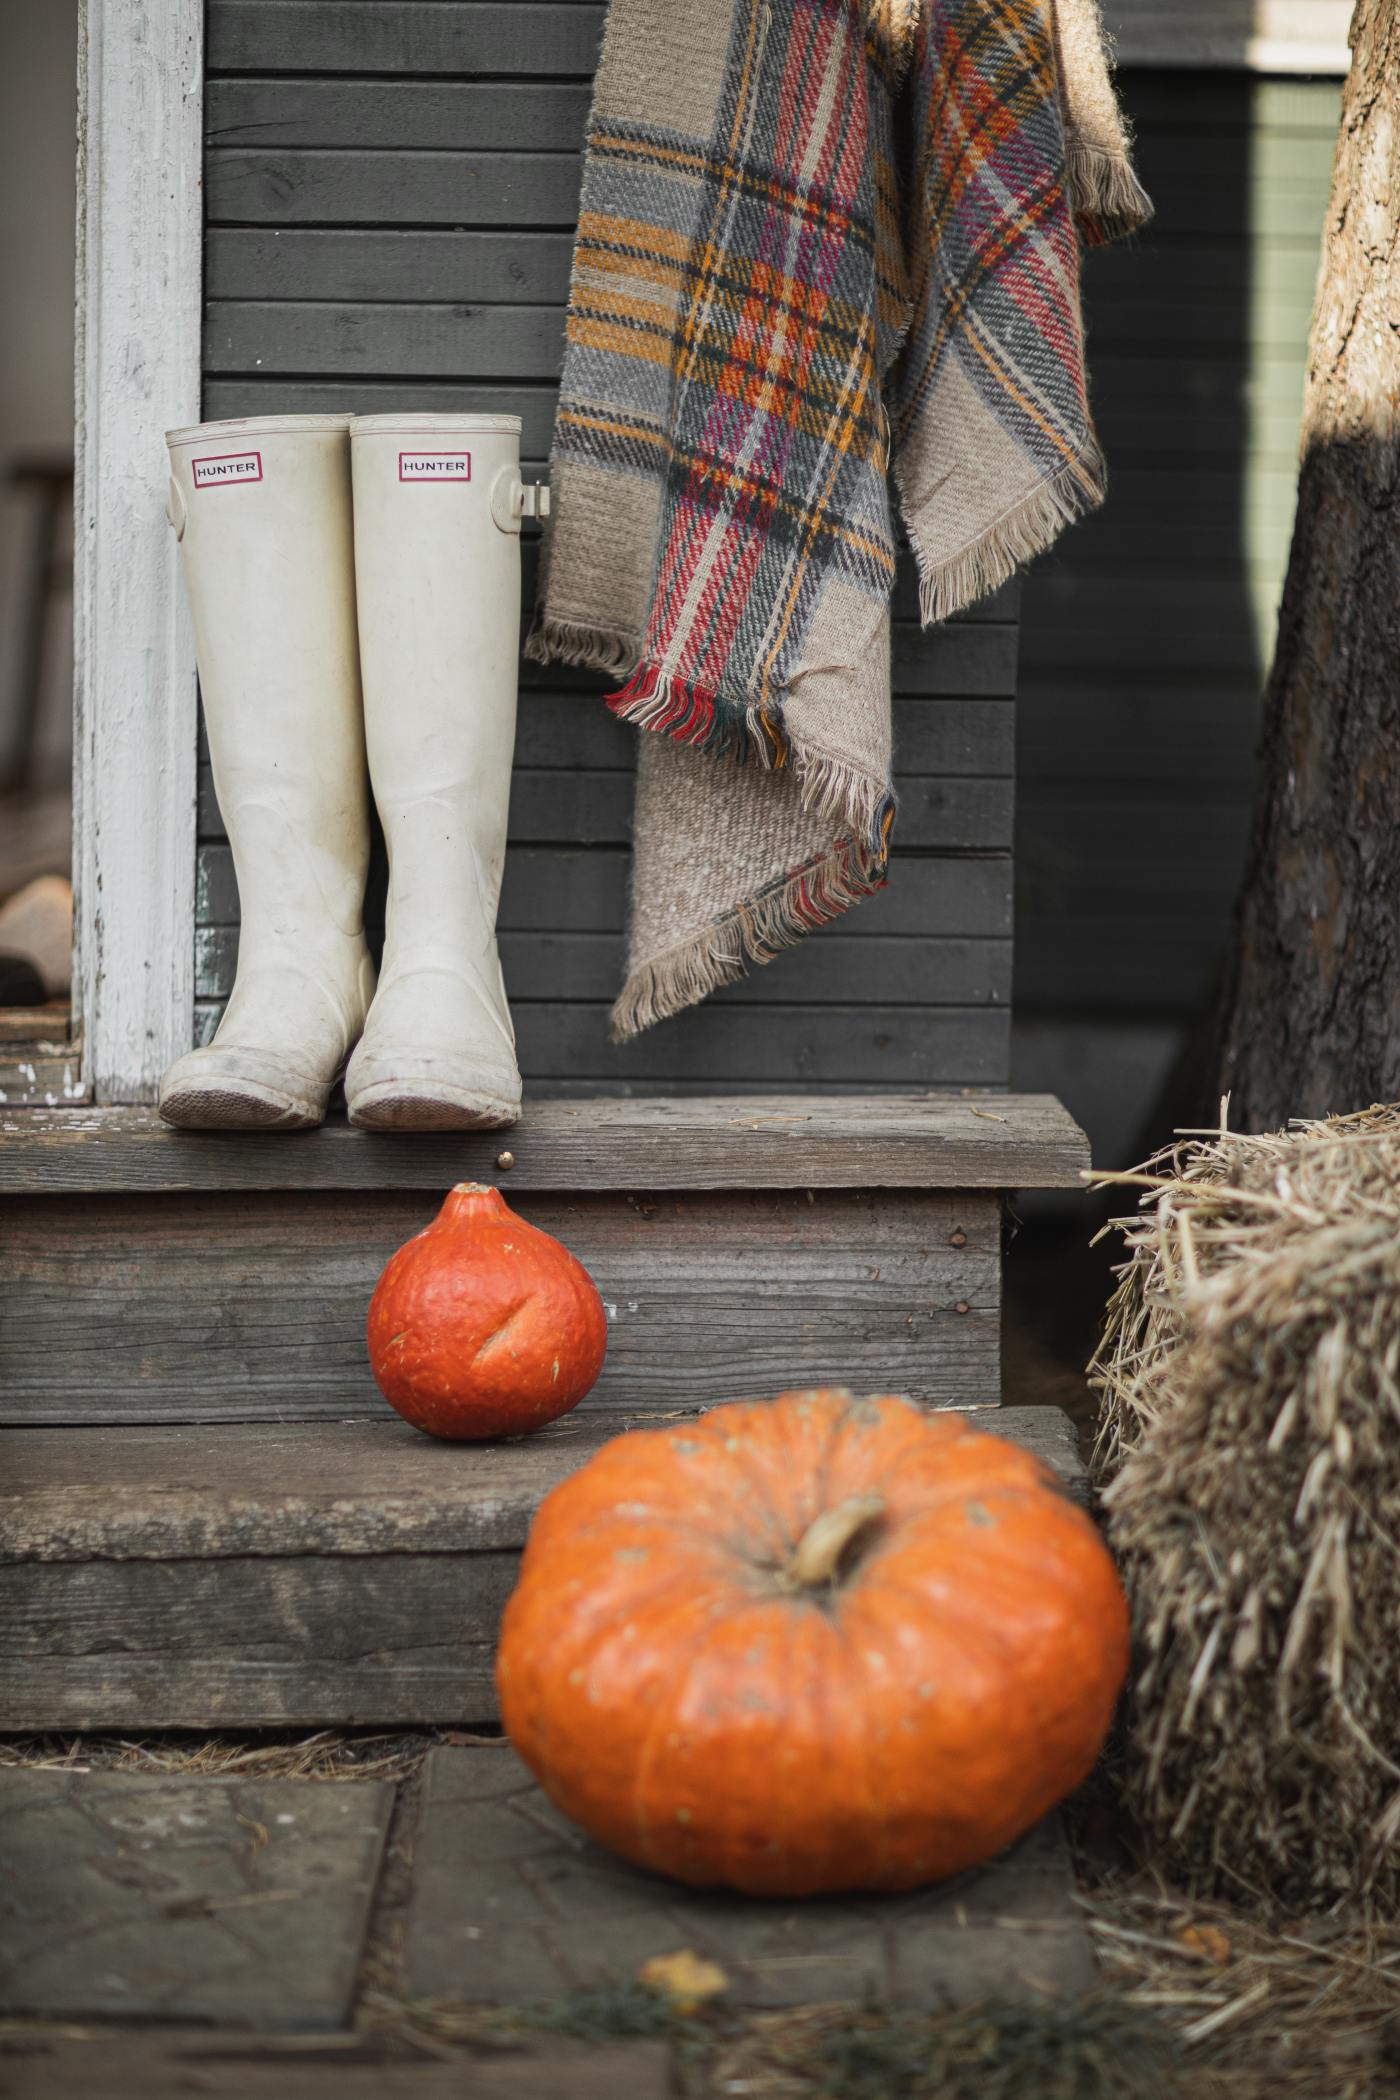 rustic front porch with two pumpkins, a haystack, white rubber boots, and a wool blanket